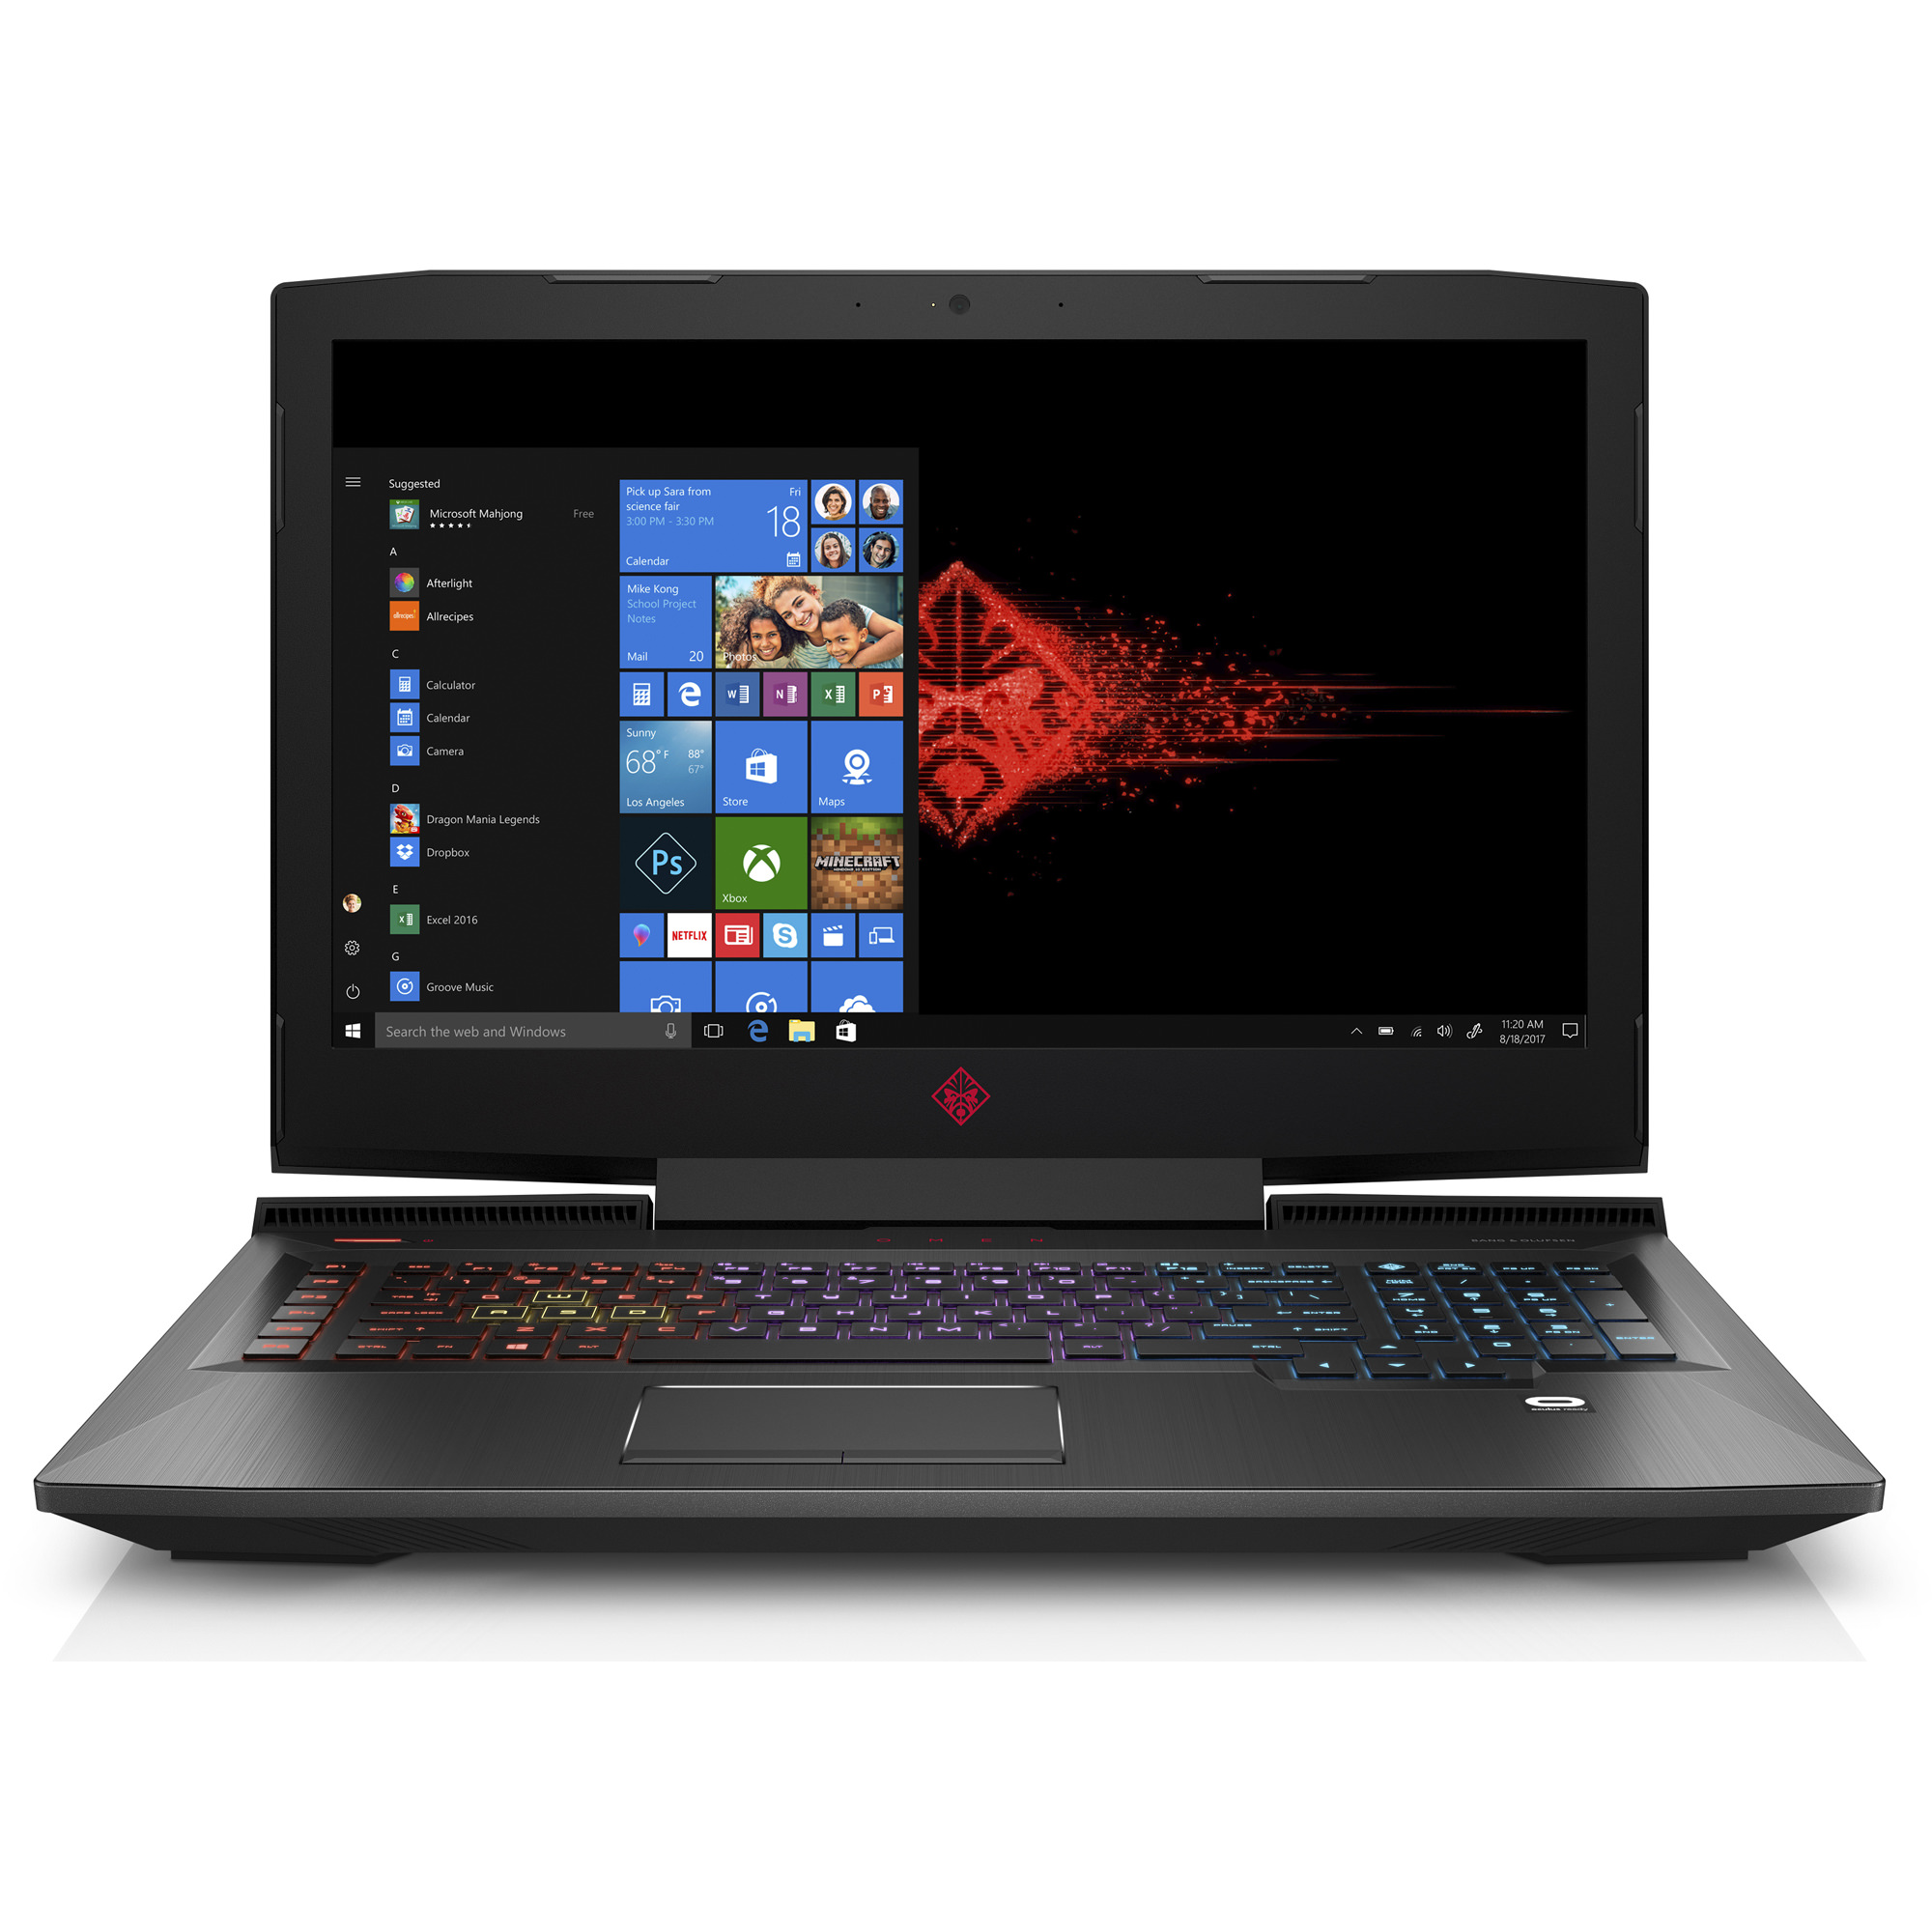 "HP OMEN 17-an110nr Gaming Laptop 17.3"", Intel Core i7-8750H, NVIDIA GeForce GTX 1050 Ti 4 GB, 1TB HDD + 128GB SSD, 12GB RAM, 3WE36UA#ABA"